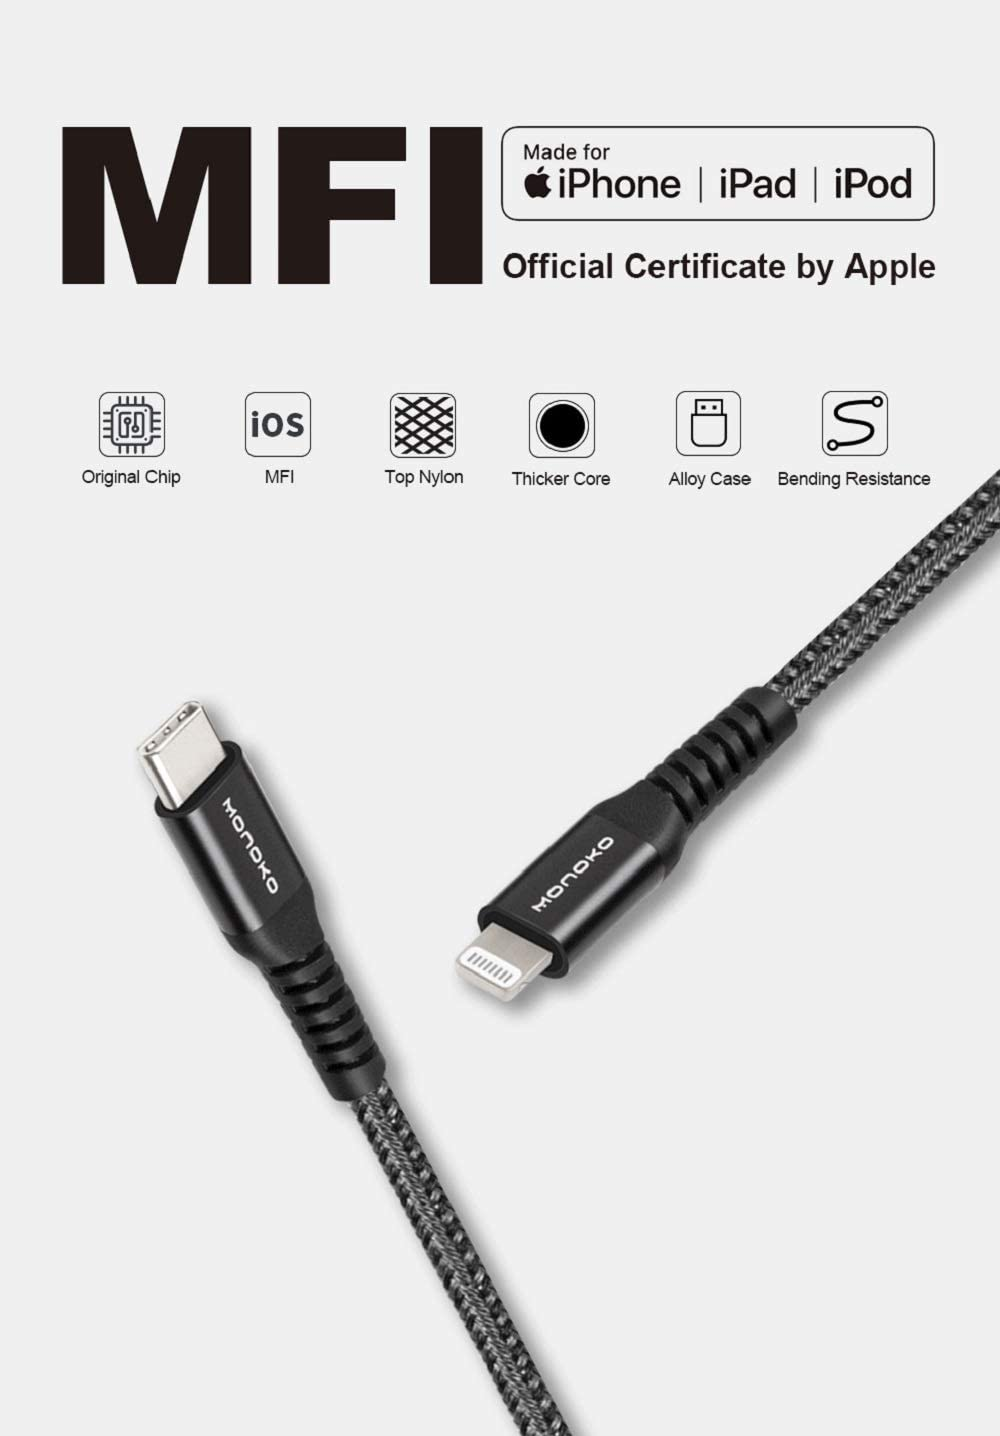 MONOKO USB C to Lightning Cable [1.2m, Apple MFi Certified] PD Fast Charging Syncing Cord for iPhone Xs/XR/X/XS Max/8/8 Plus iPad iPod Supports Power Delivery (Use with USB C Chargers) (1-Pack, Black)